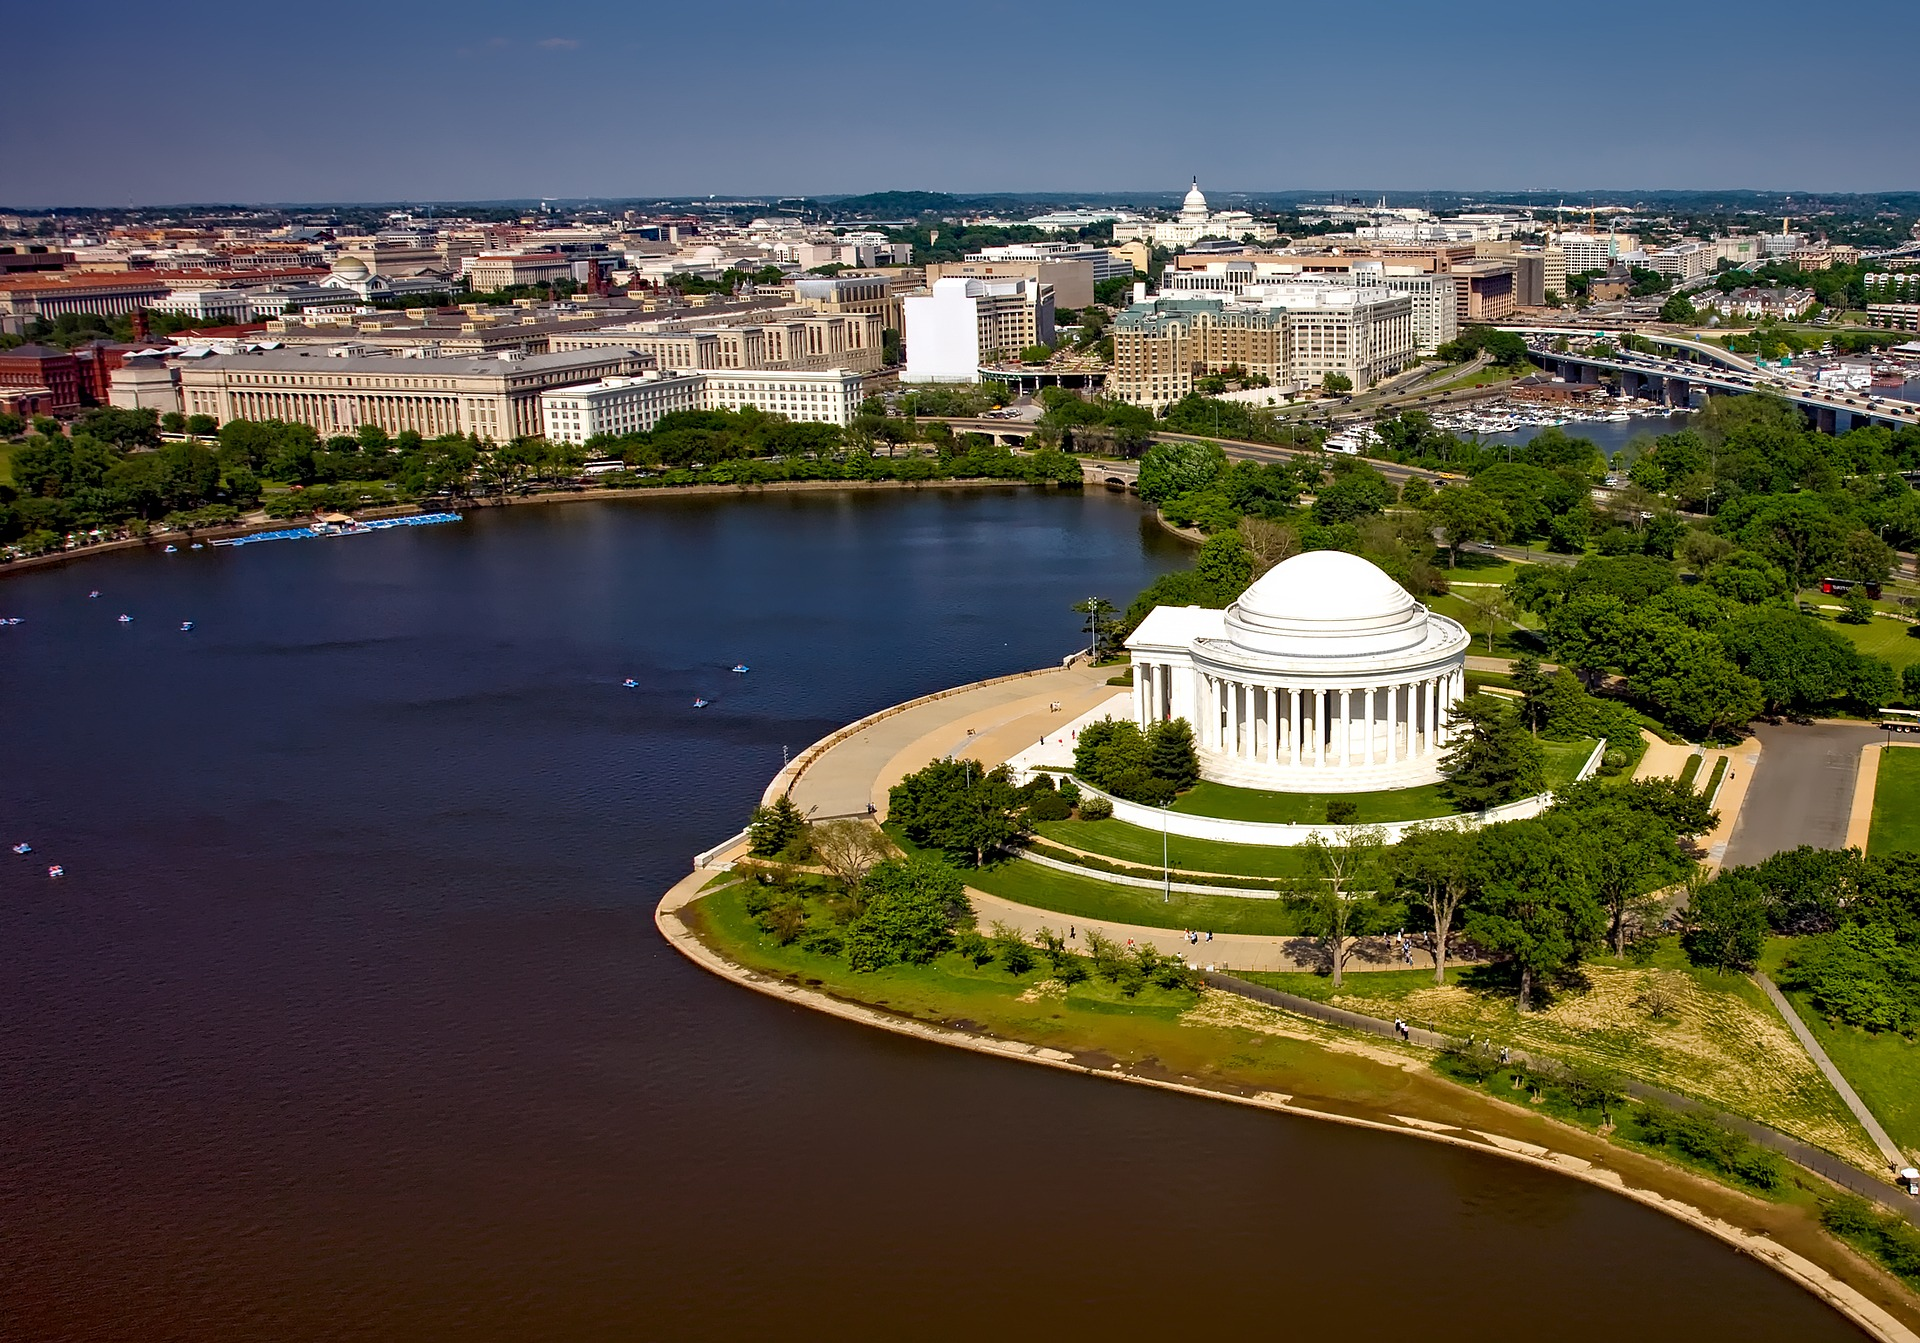 Top Attractions And Things To Do In Washington D C Widest